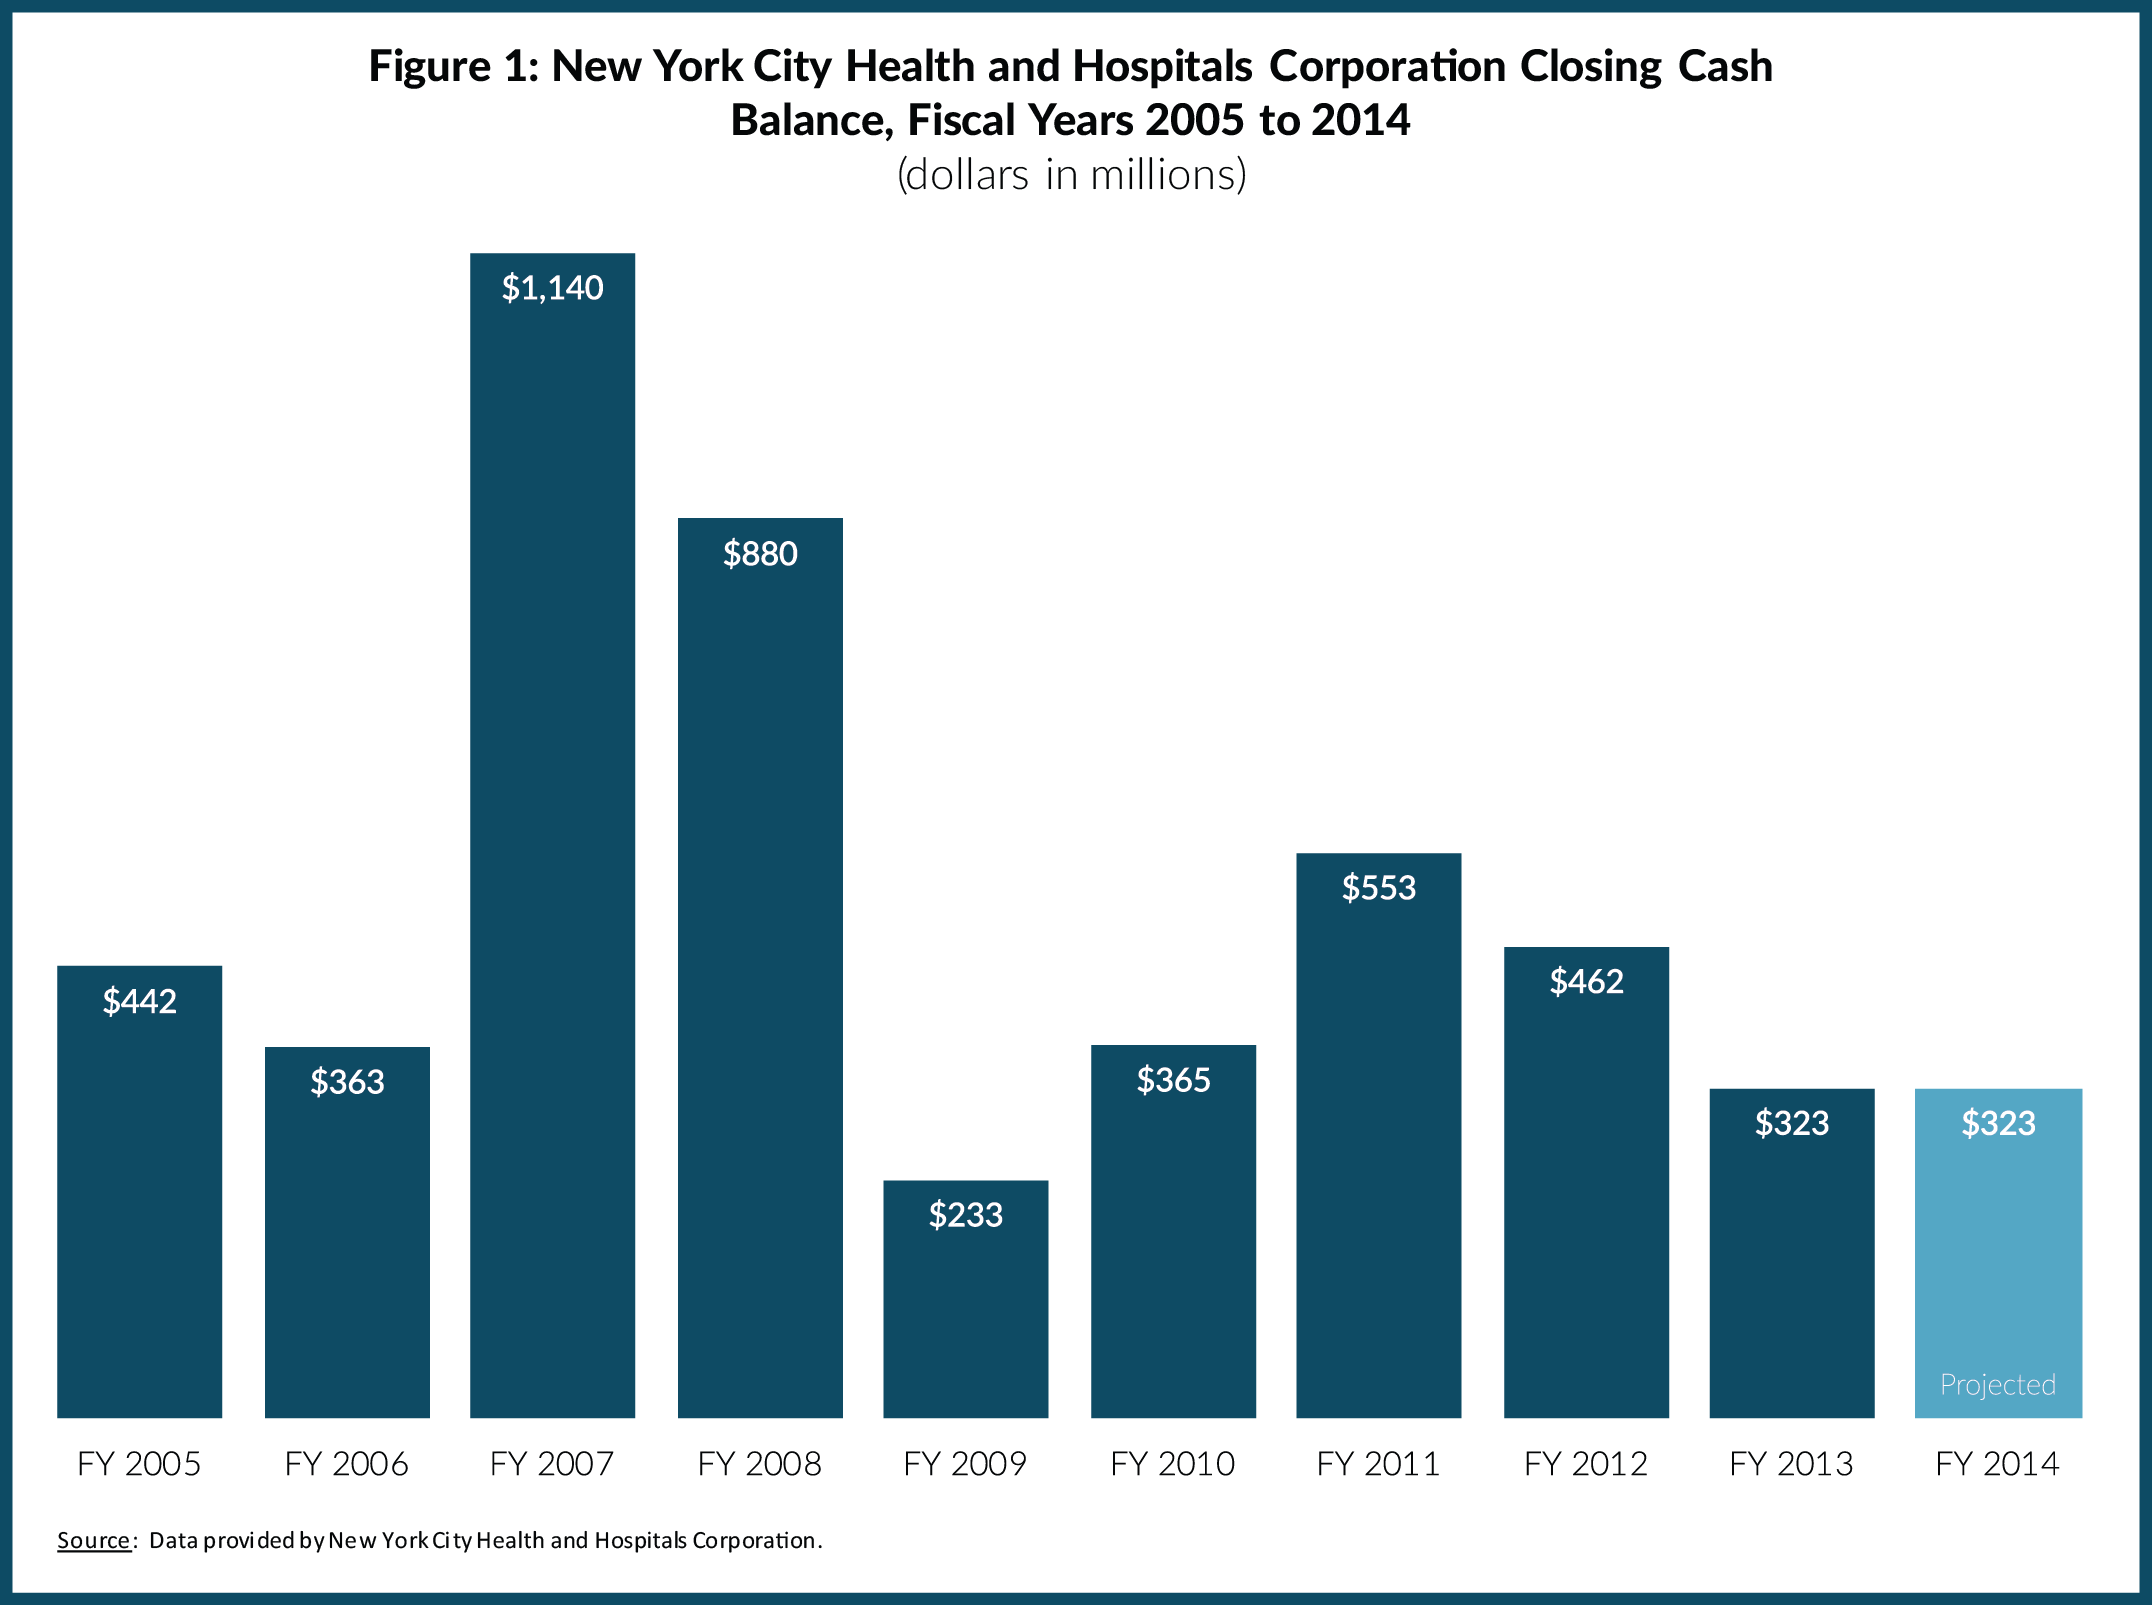 Figure 1: New York City Health and Hospitals Corporation Closing Cash Balance, Fiscal Years 2005 to 2014